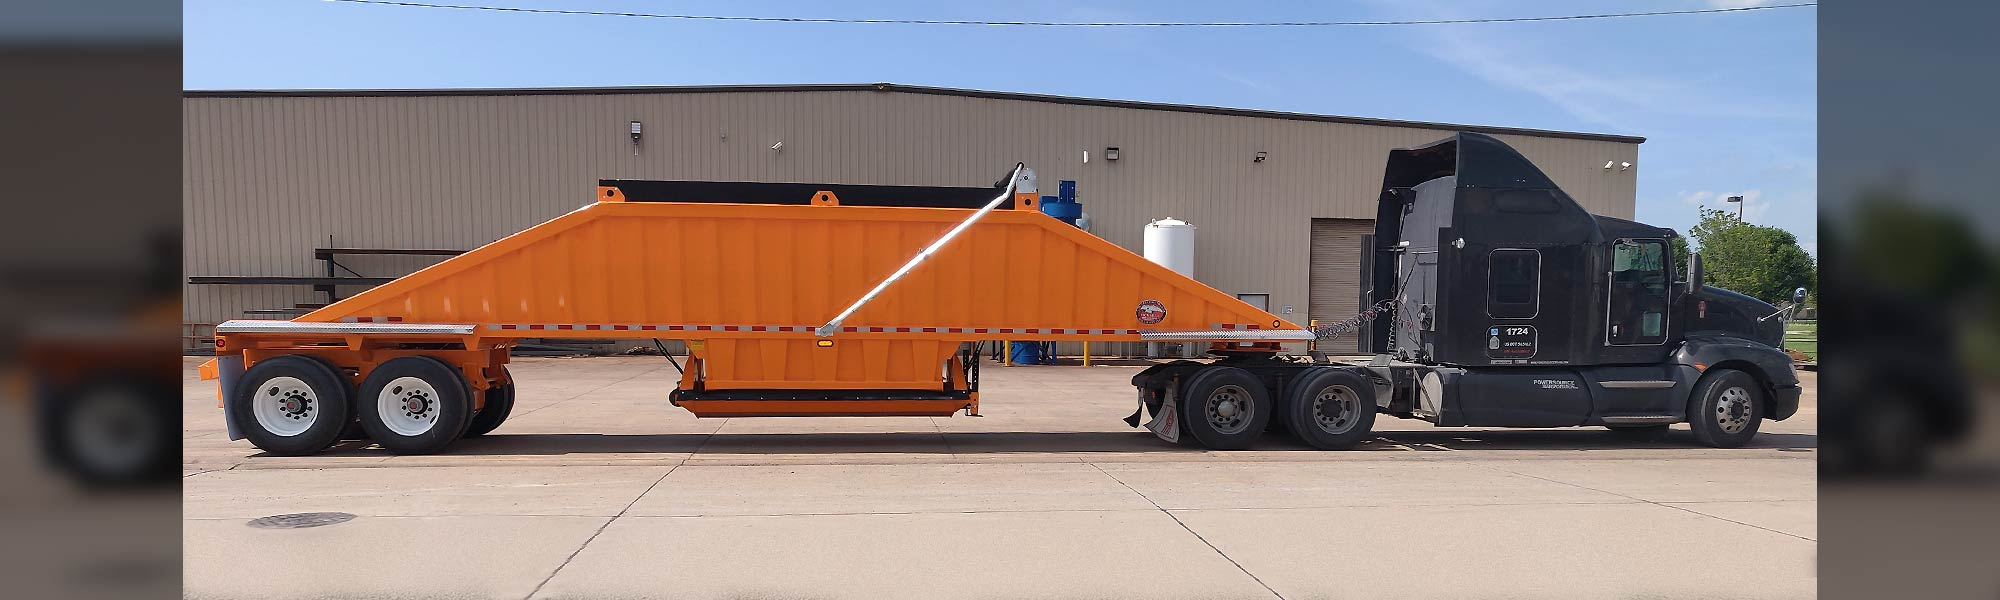 Dark Cab with Orange Bulk Trailer